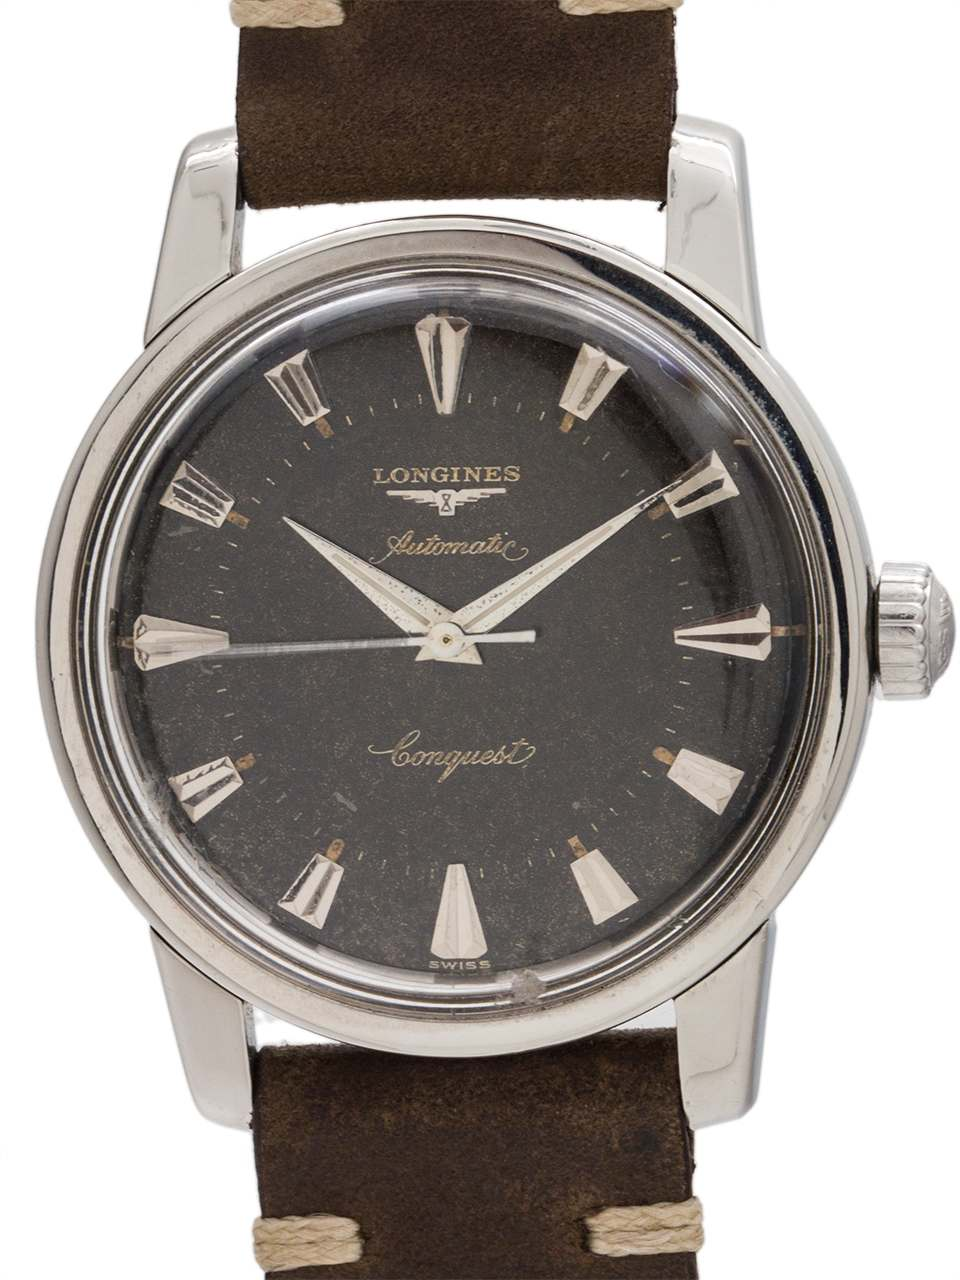 Longines Conquest Tropical Gilt Dial circa 1957